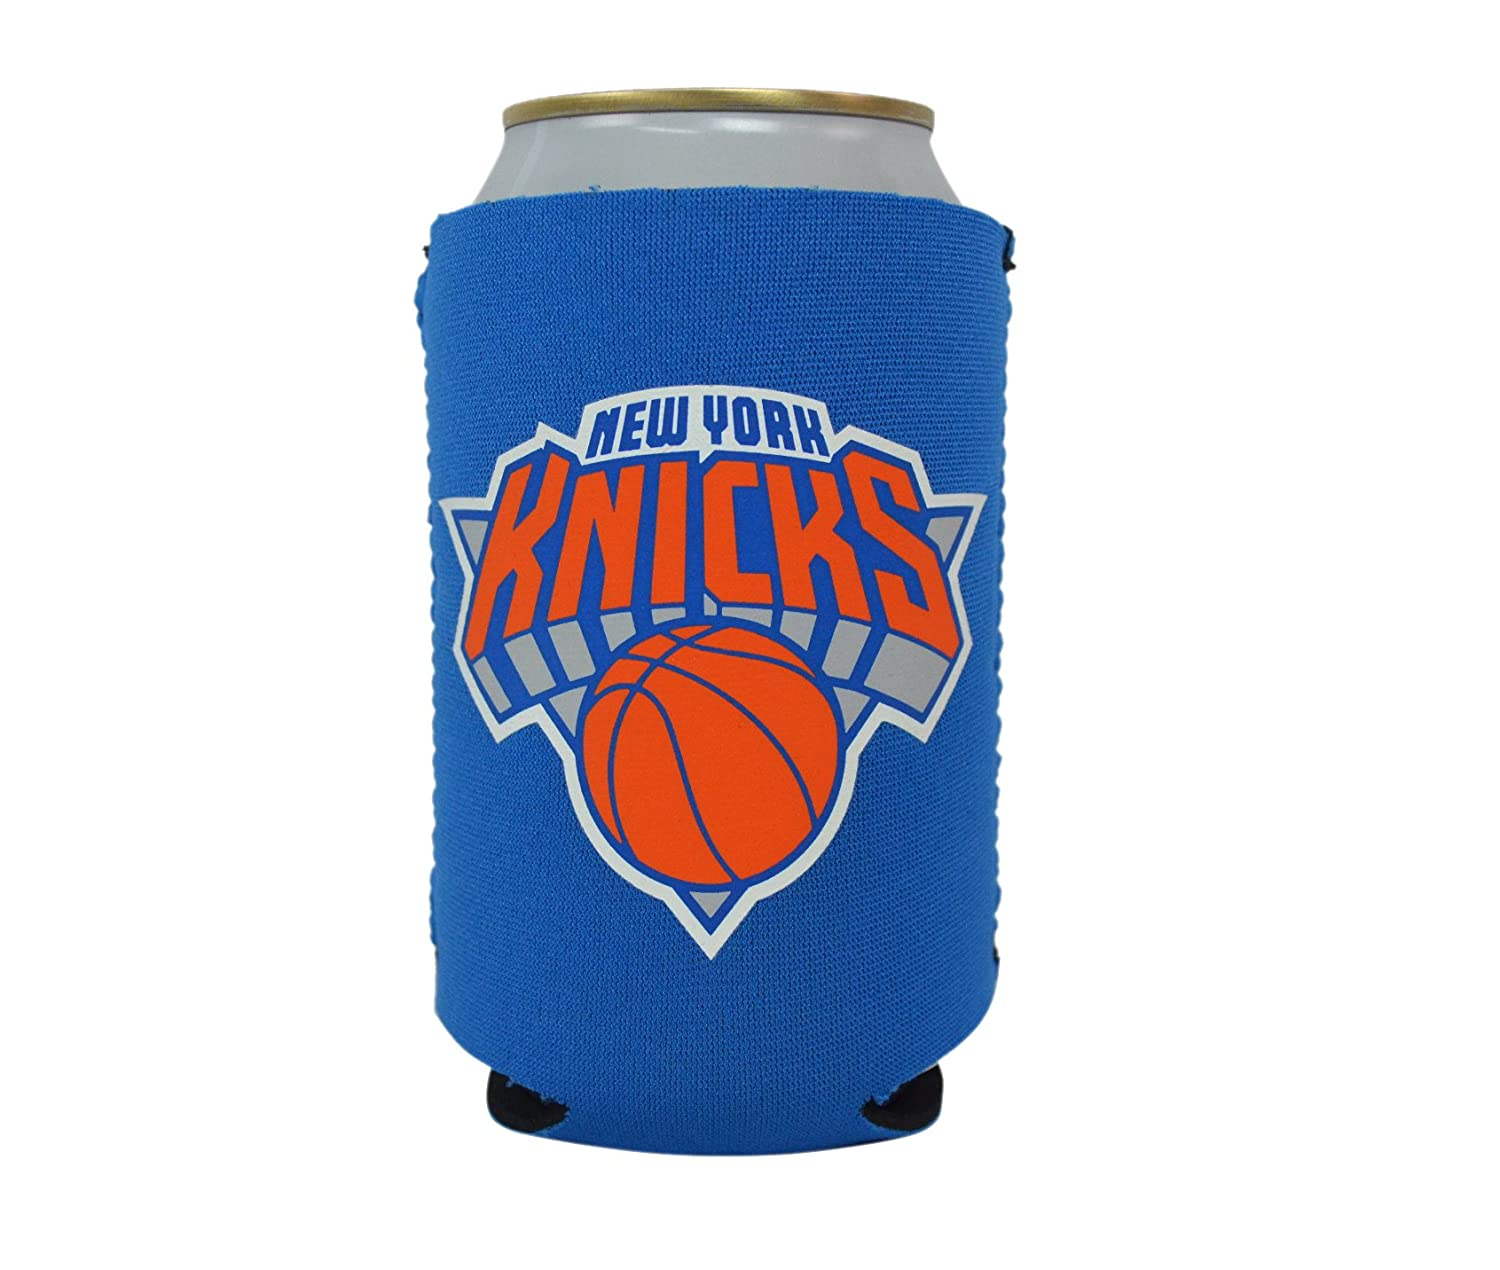 Show Team Pride at Home NBA Fan Shop Authentic 2-Pack Insulated 12 Oz Cold Can Cooler//Holder Tailgating or at The Game Great for Fans